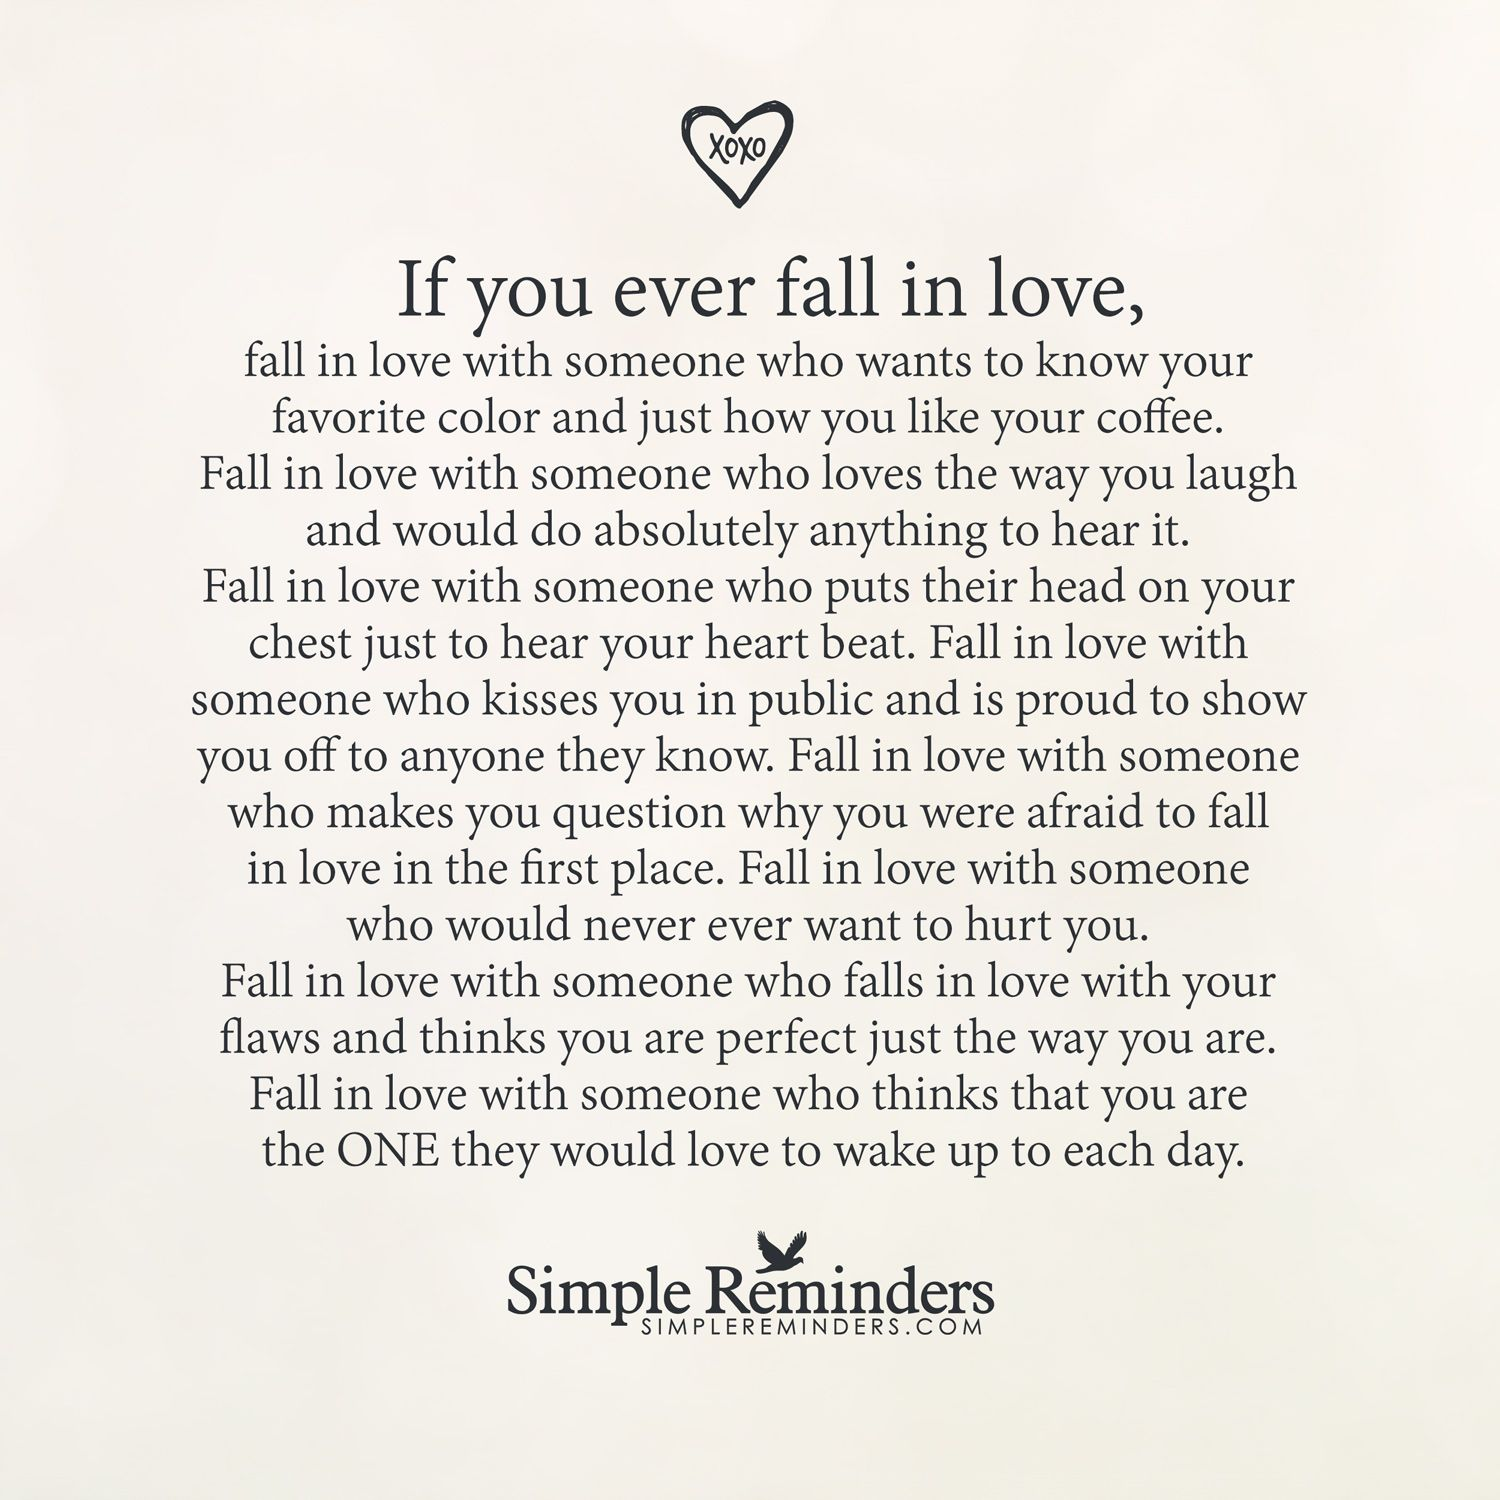 Falling In Love If You Ever Fall In Love By Unknown Author Various Sayings